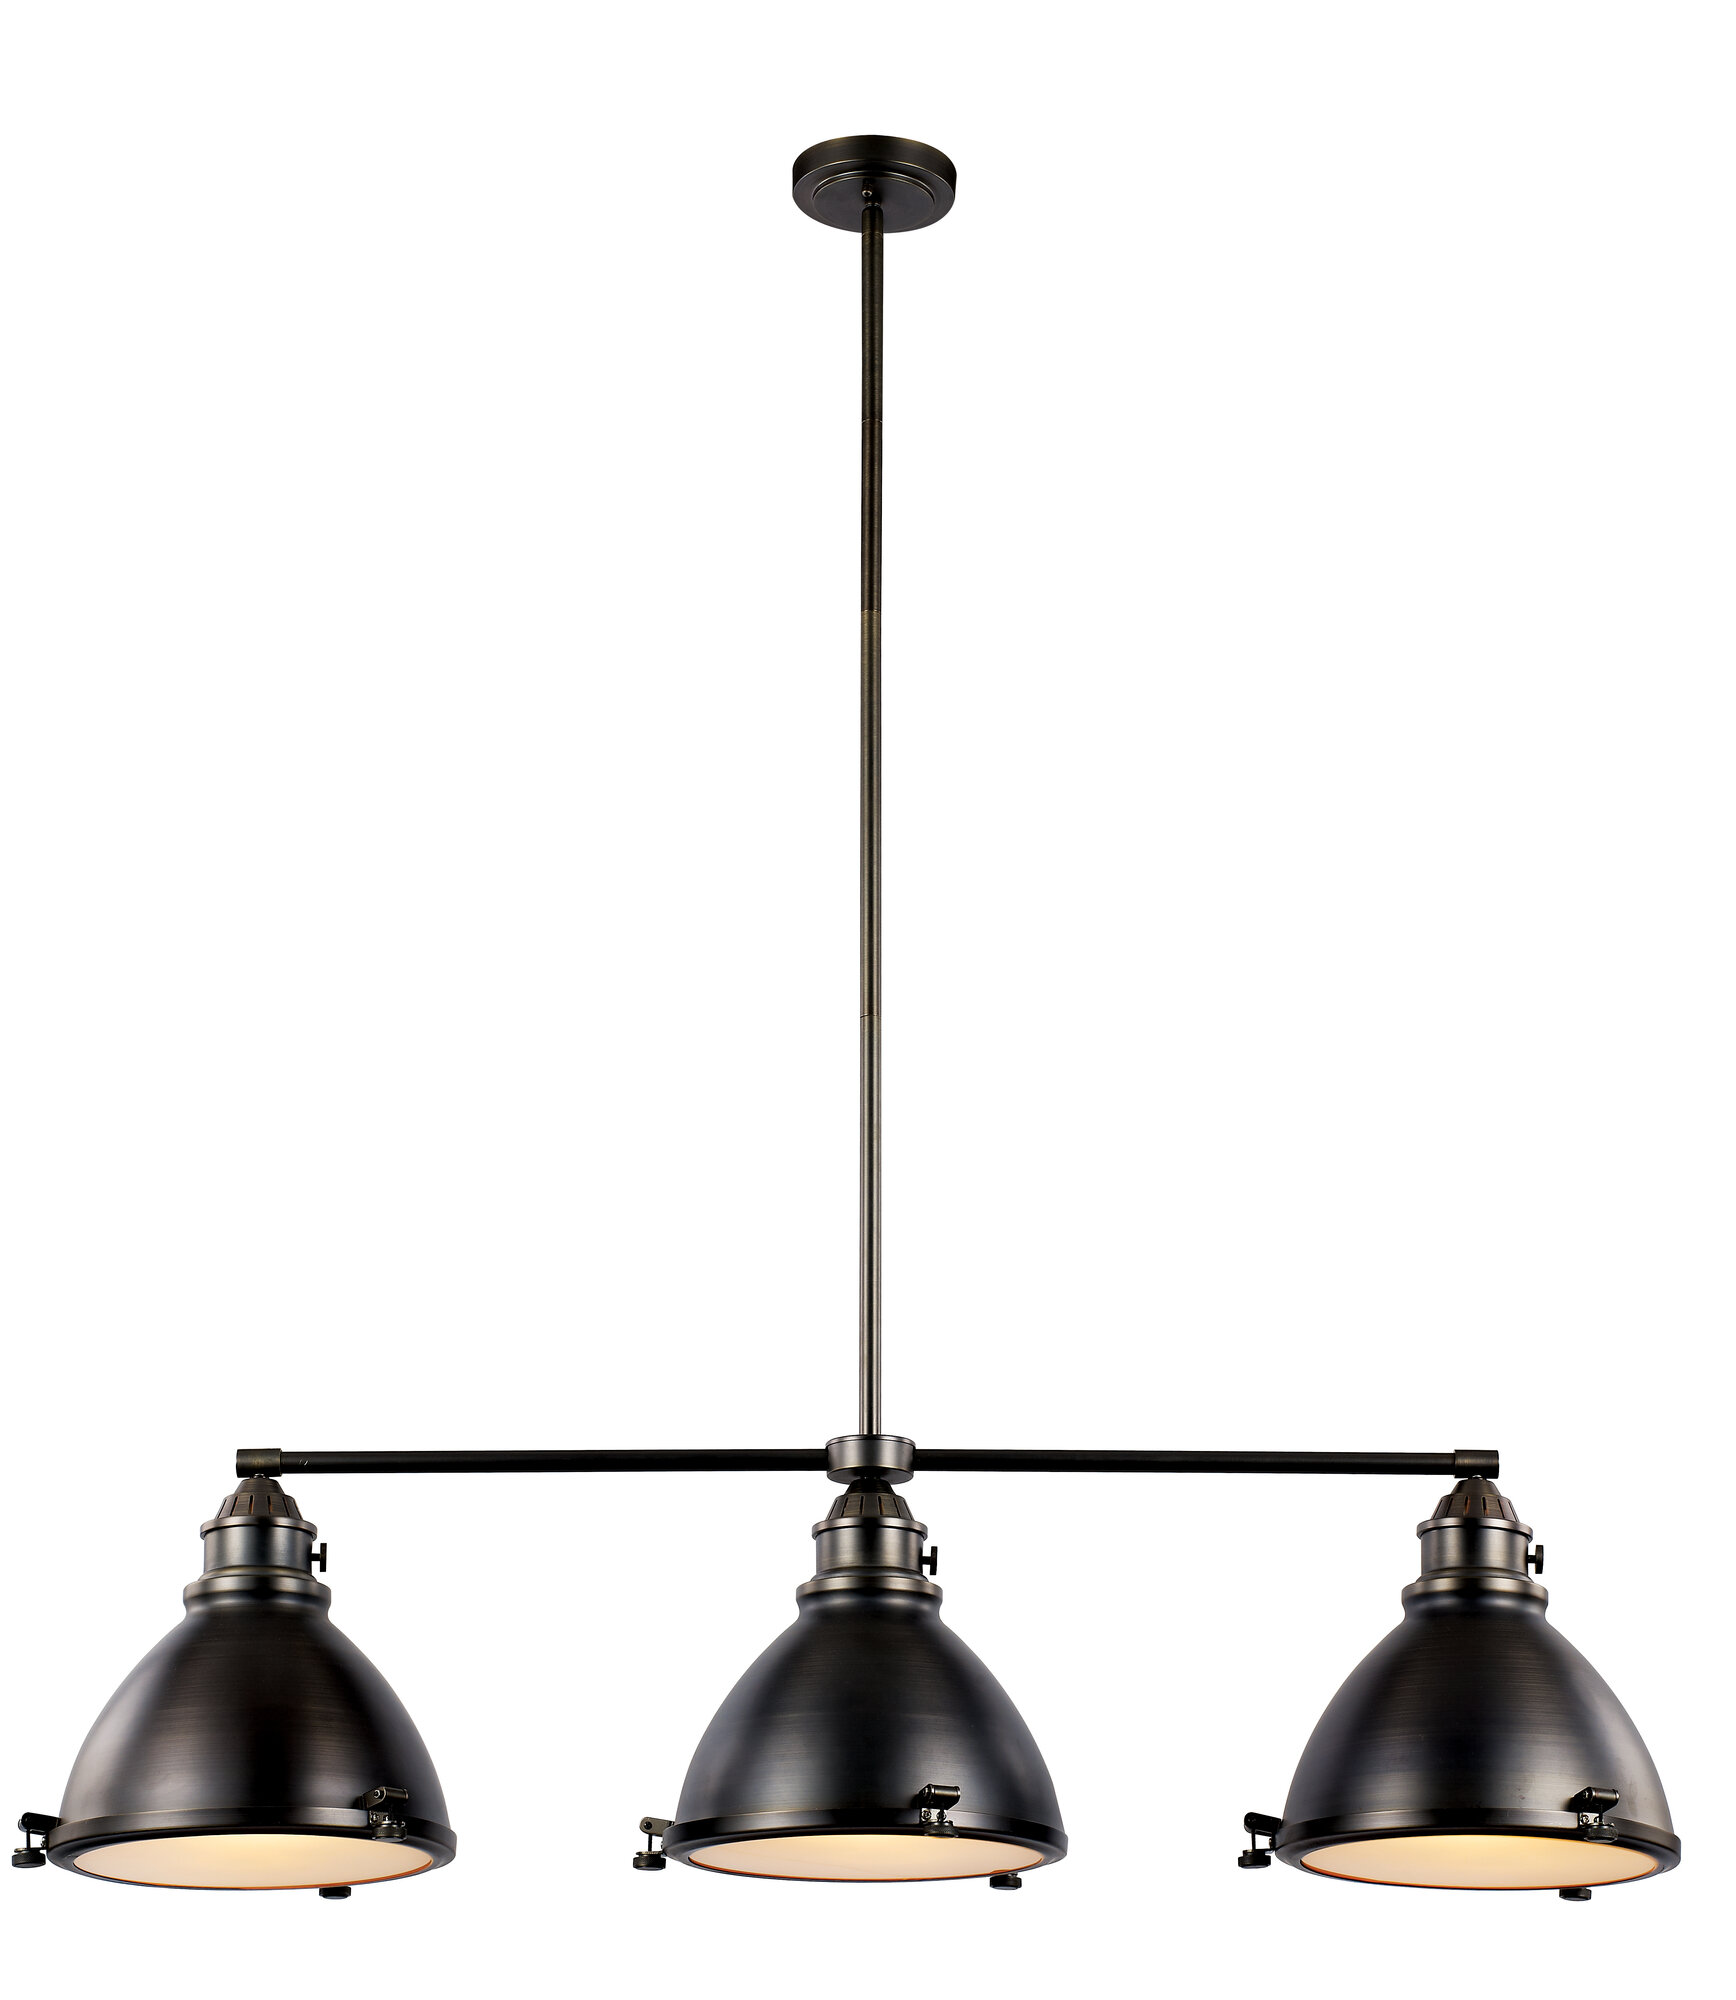 Transglobe lighting vintage 3 light kitchen island pendant for Kitchen island lighting pendants